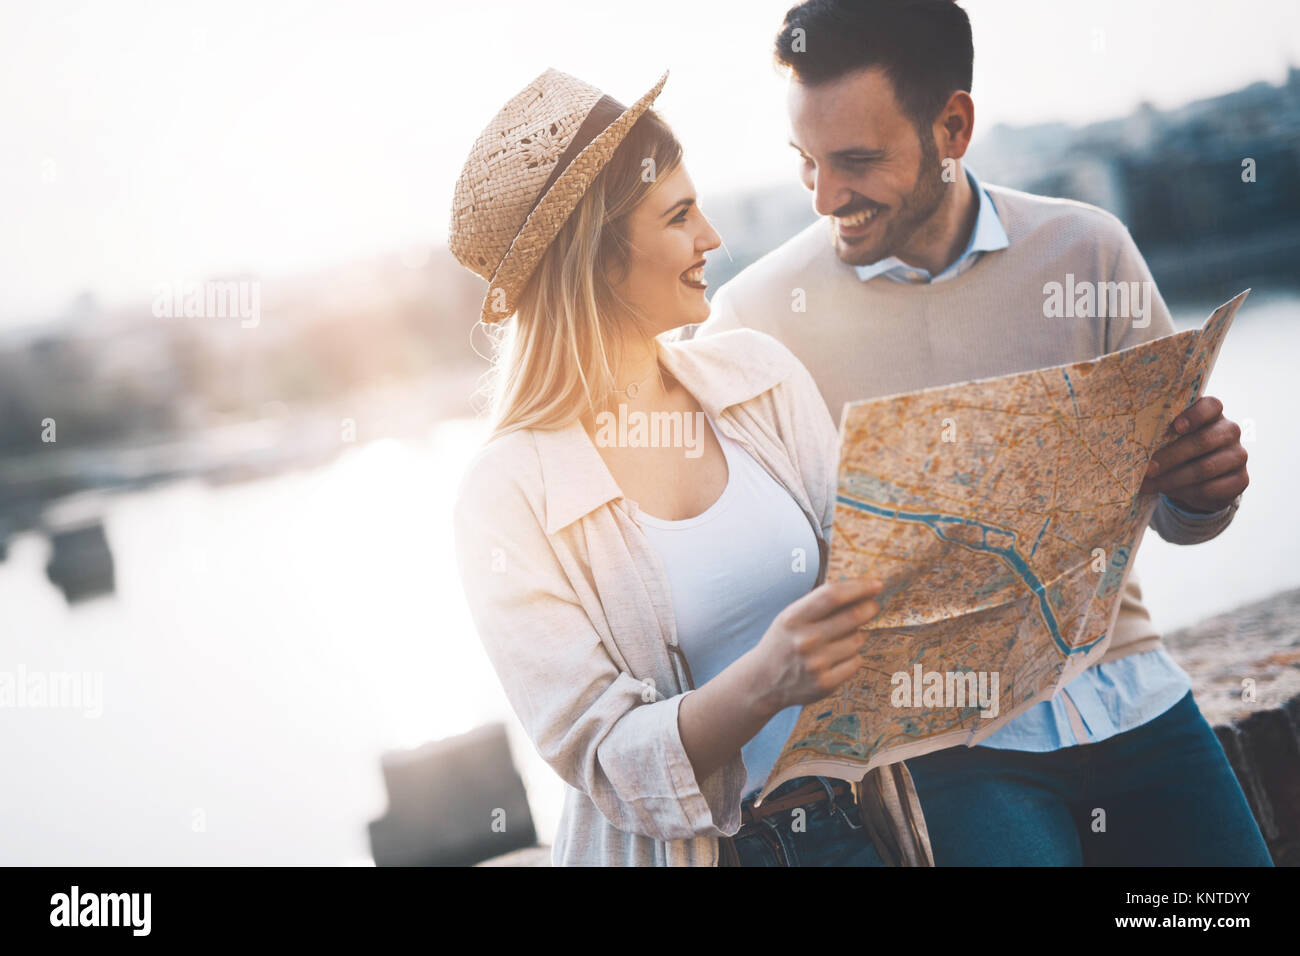 Beau couple ou vos visites Photo Stock